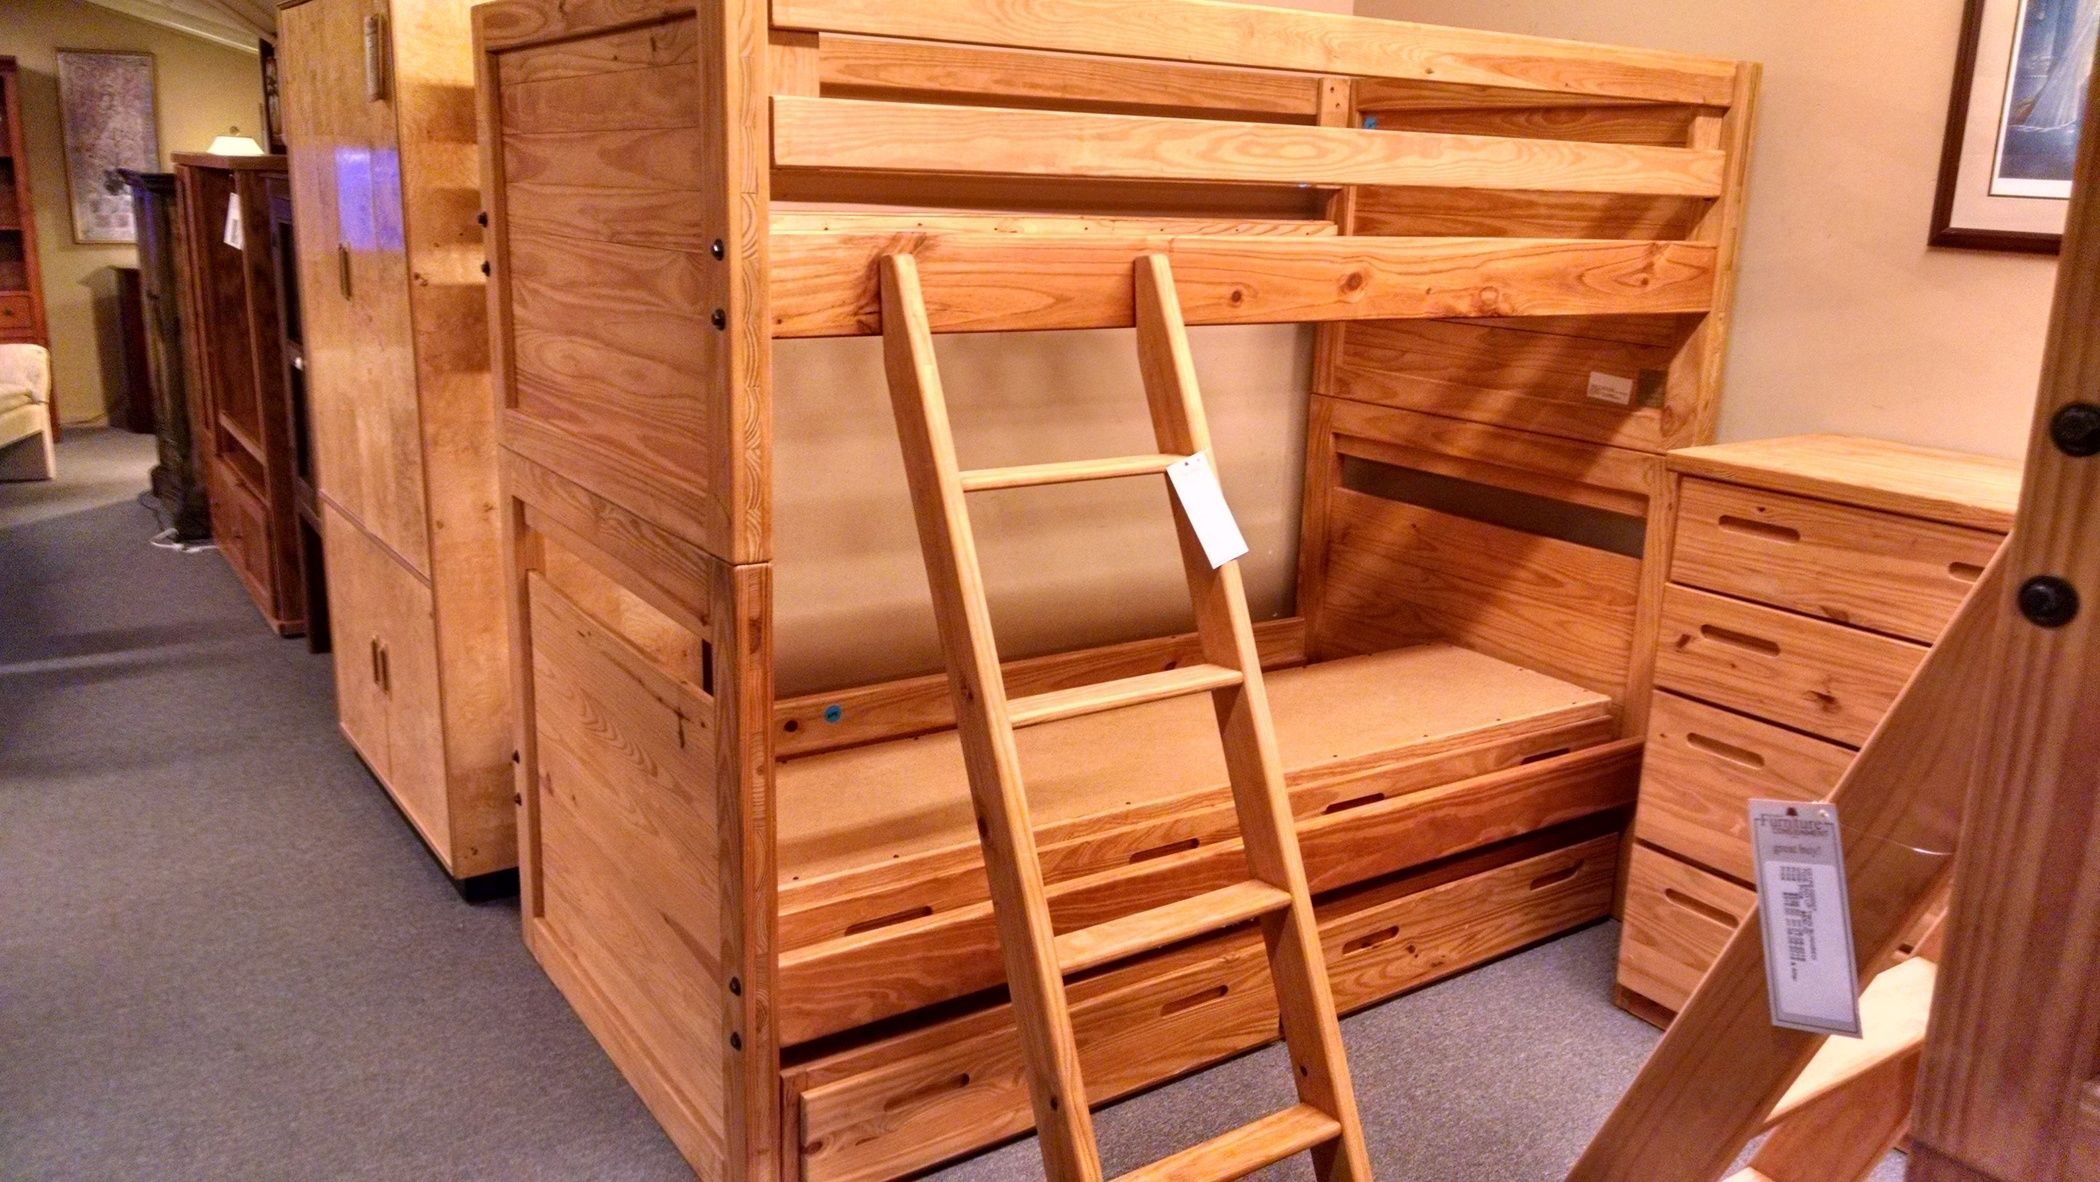 This End Up Twin Bunkbed Delmarva Furniture Consignment